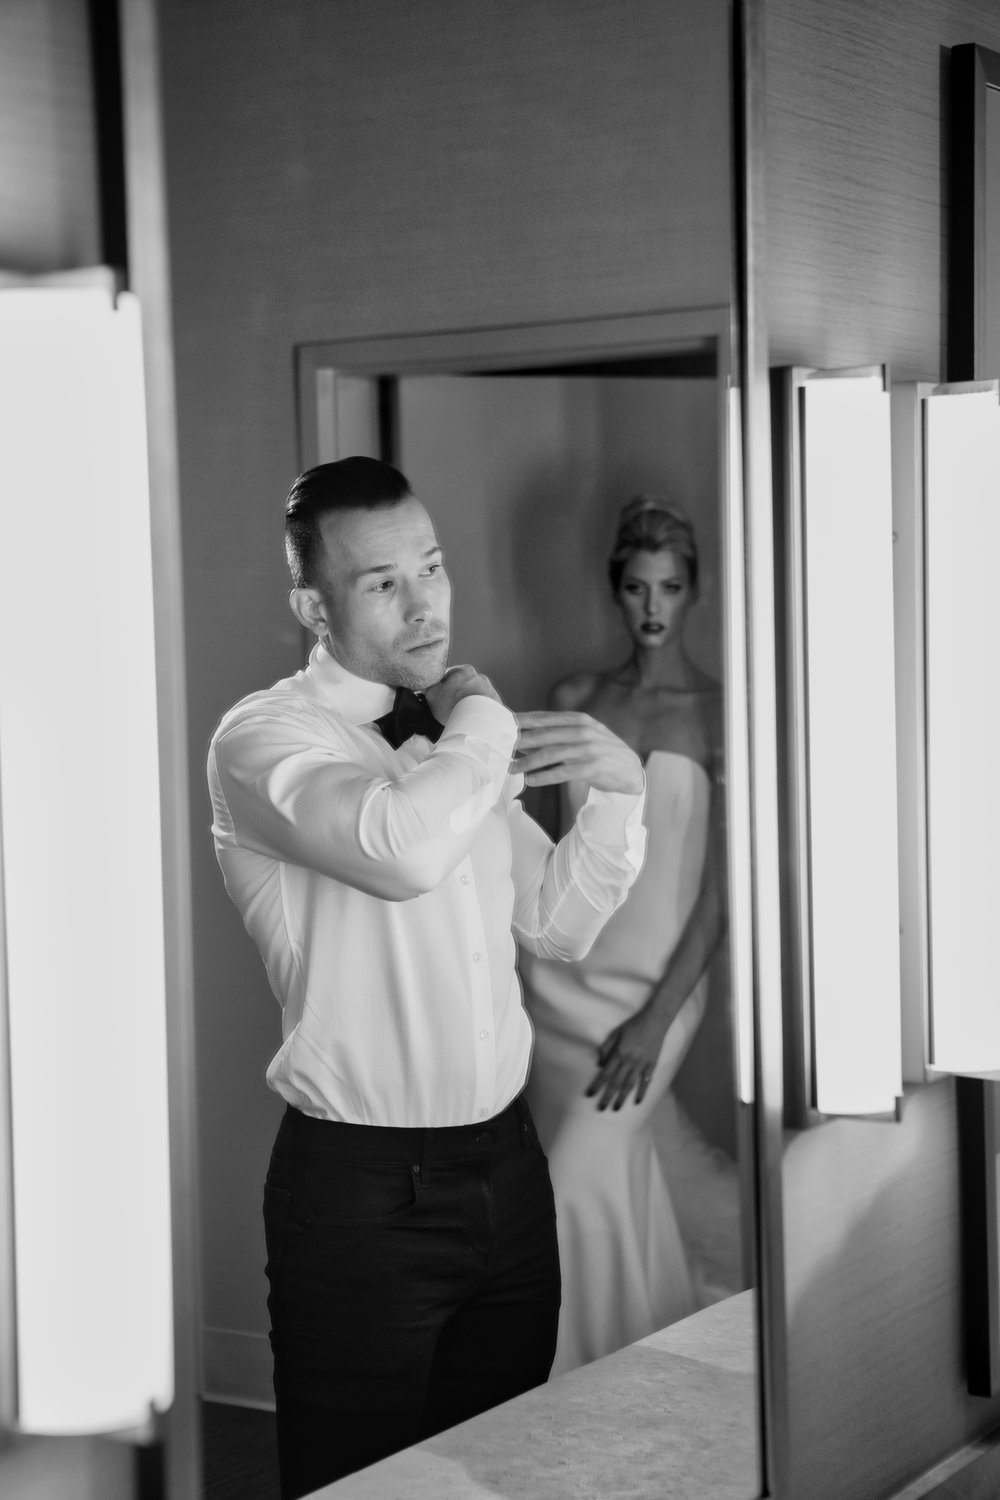 Sexy image of bride watching a groom get dressed.  Las Vegas Wedding Planner & Event Designer  Andrea Eppolito Events  · Photography by  Adam Frazier Photo  · Video by  M Place Productions  · Floral & Decor by  DBD Las Vegas  · Venue  ARIA Primrose Ballroom  · Cigar Band by  Royal Cigar Company  and  Jason of Beverly Hills  · Beauty by  Glammed Up Las Vegas  · Dress by  Vera Wang  · Salon  Couture Bride Las Vegas  · Shoes  Bella Belle Shoes  · Bride  Katrina May Armenta  · Groom  Lucas Cuevas